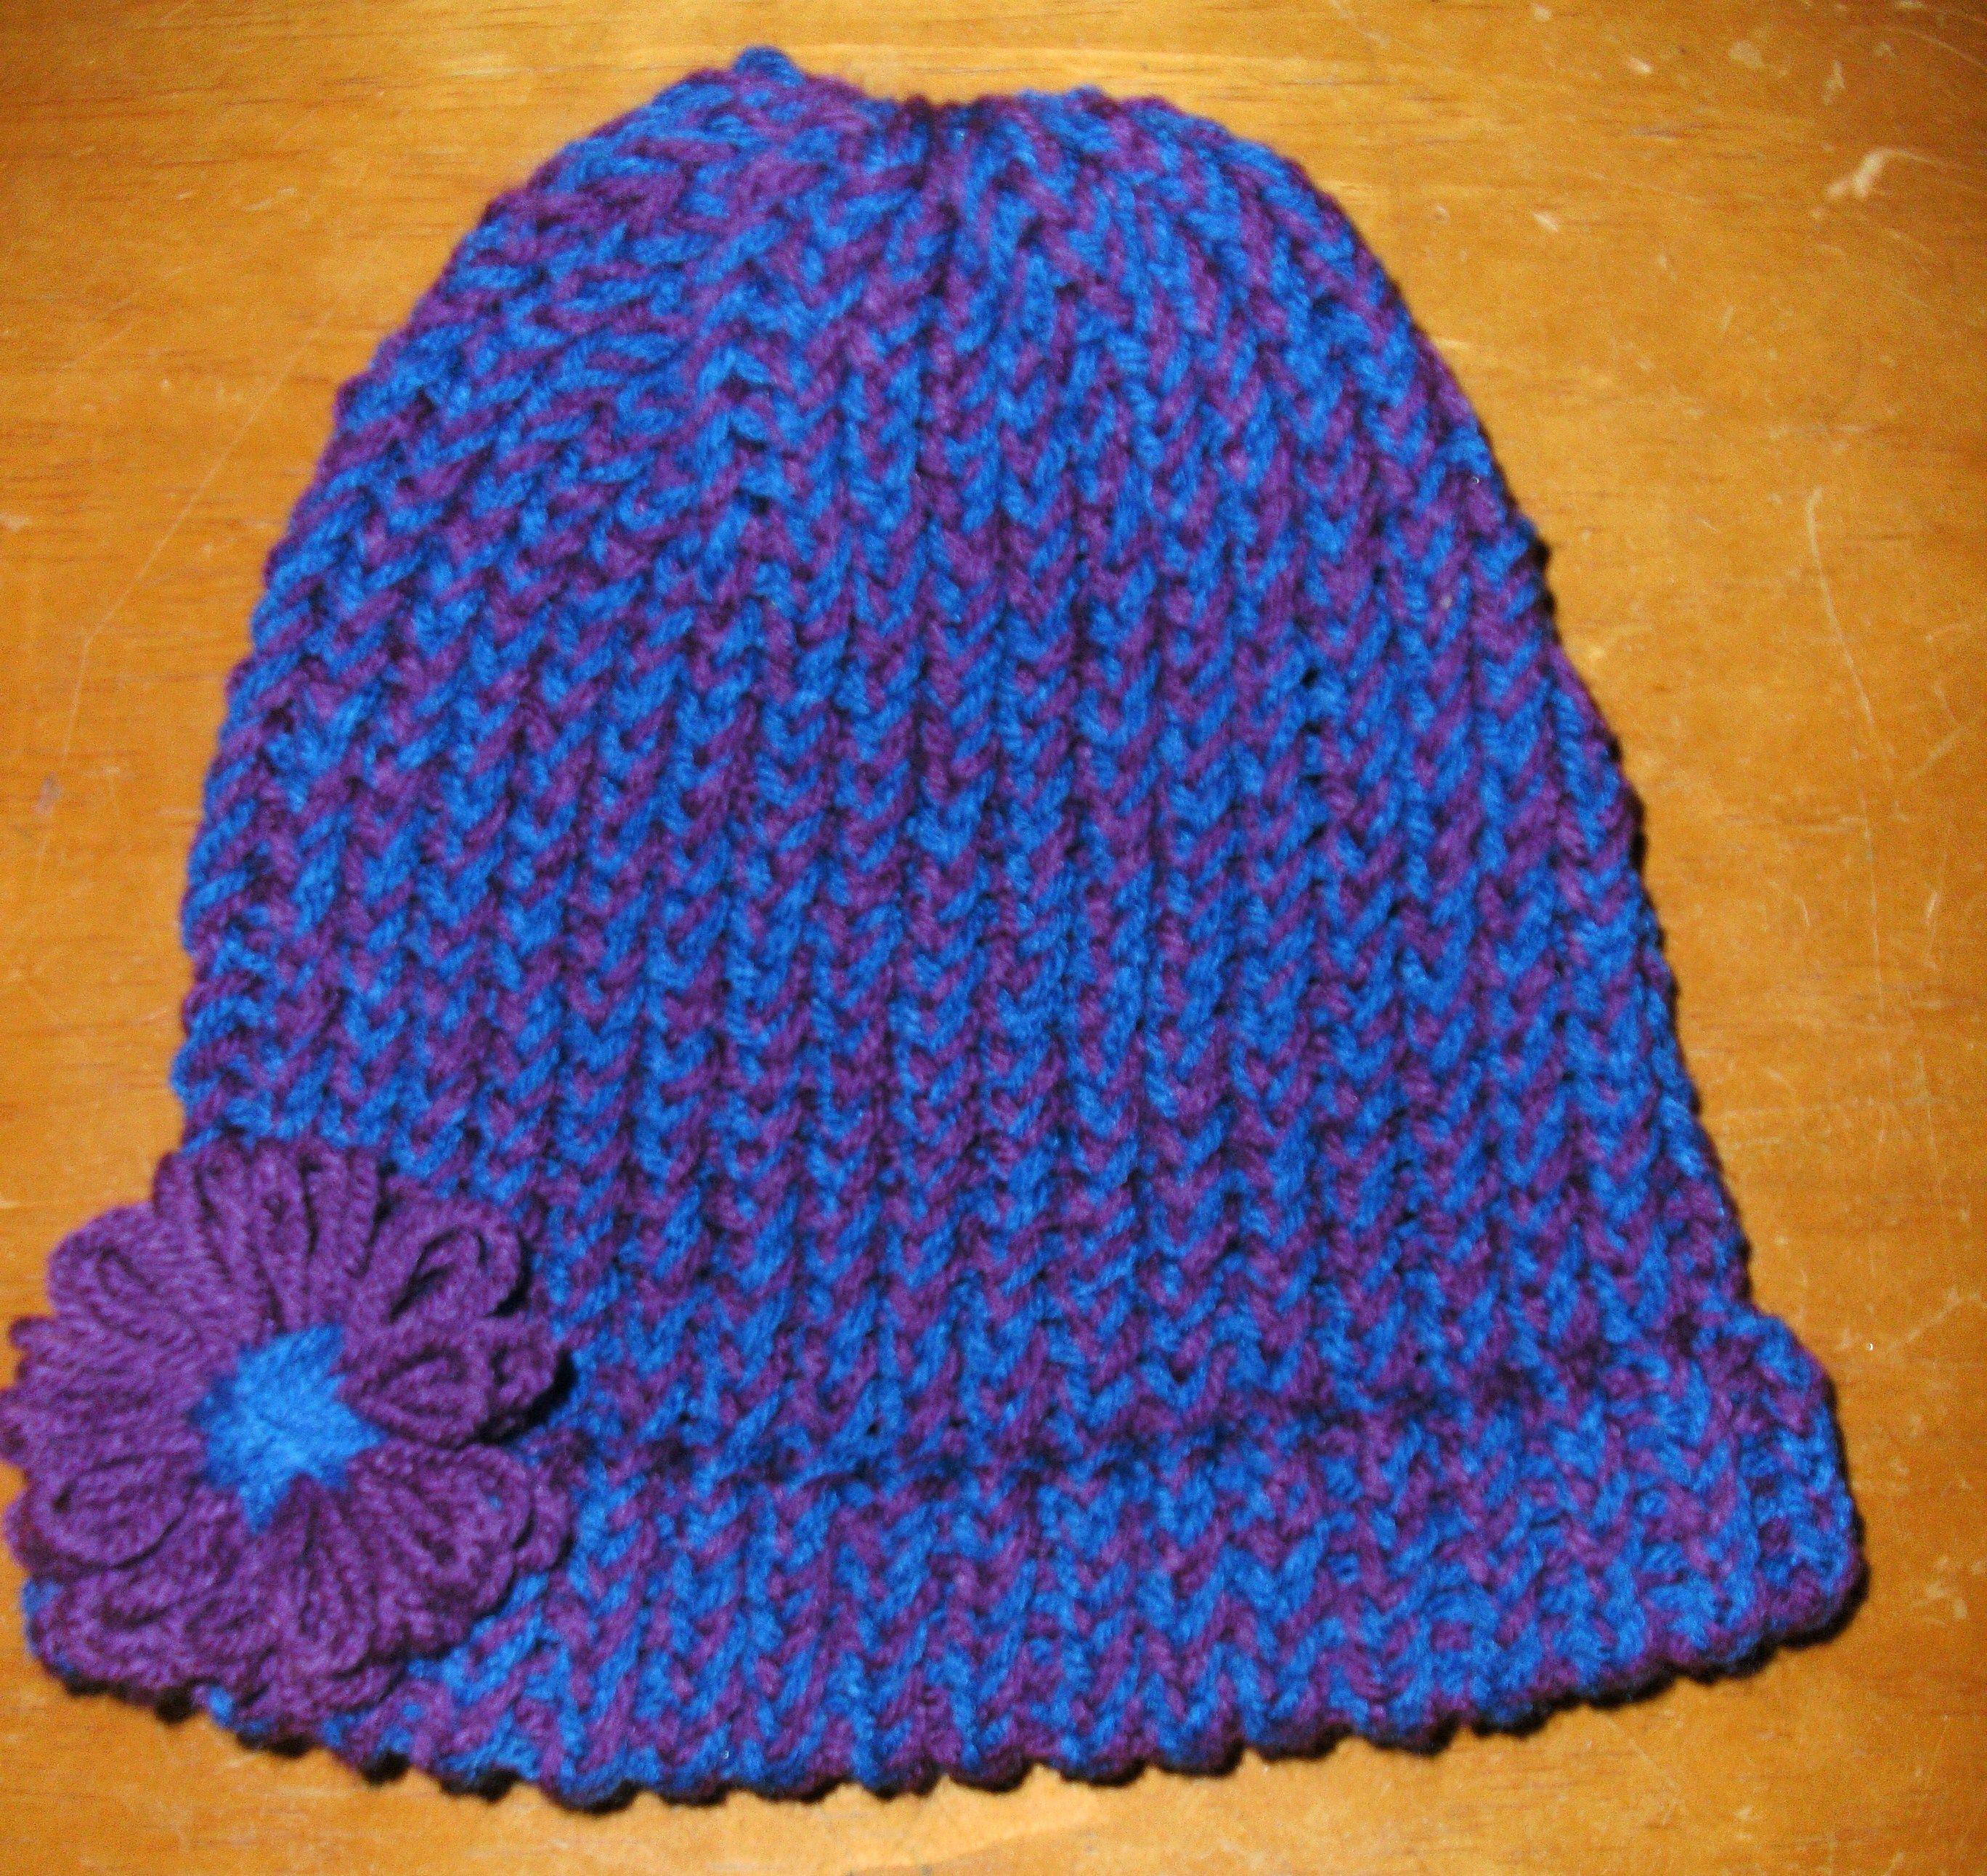 Knitting Flowers On A Loom : Loom knit hat with flower knitting crochet